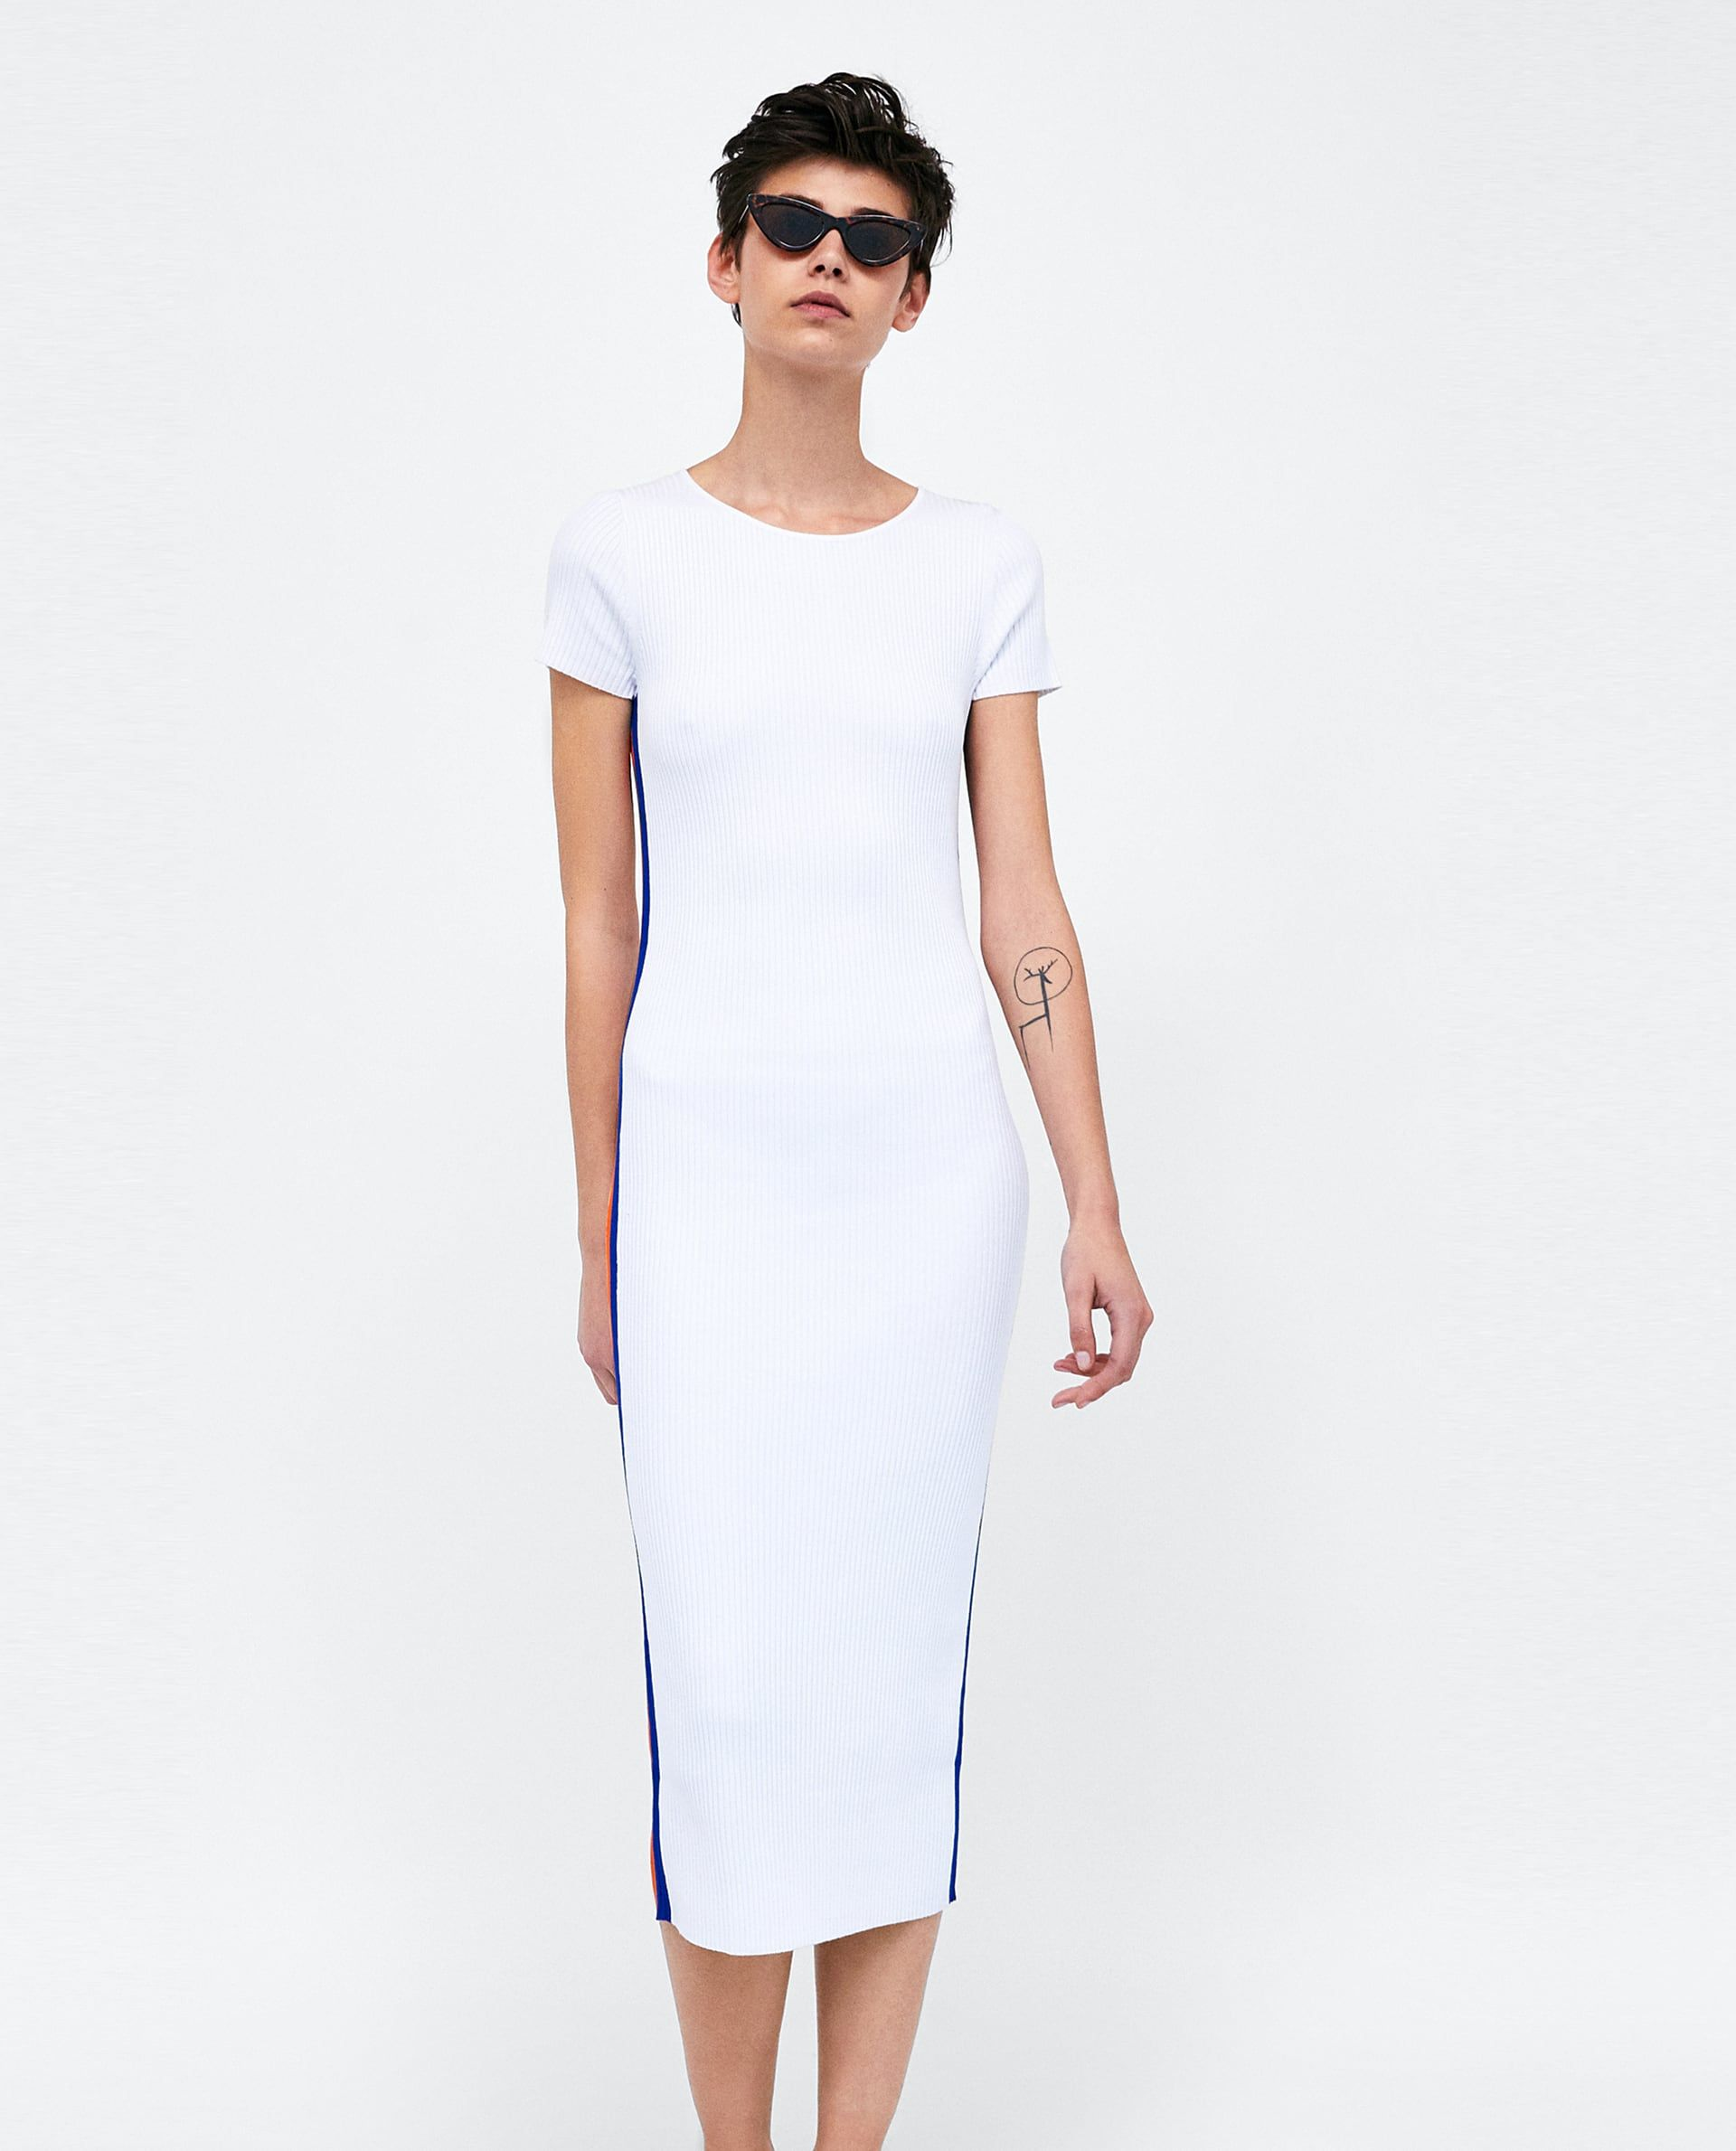 e5215423b9df Image 1 of KNIT DRESS WITH SIDE STRIPES from Zara